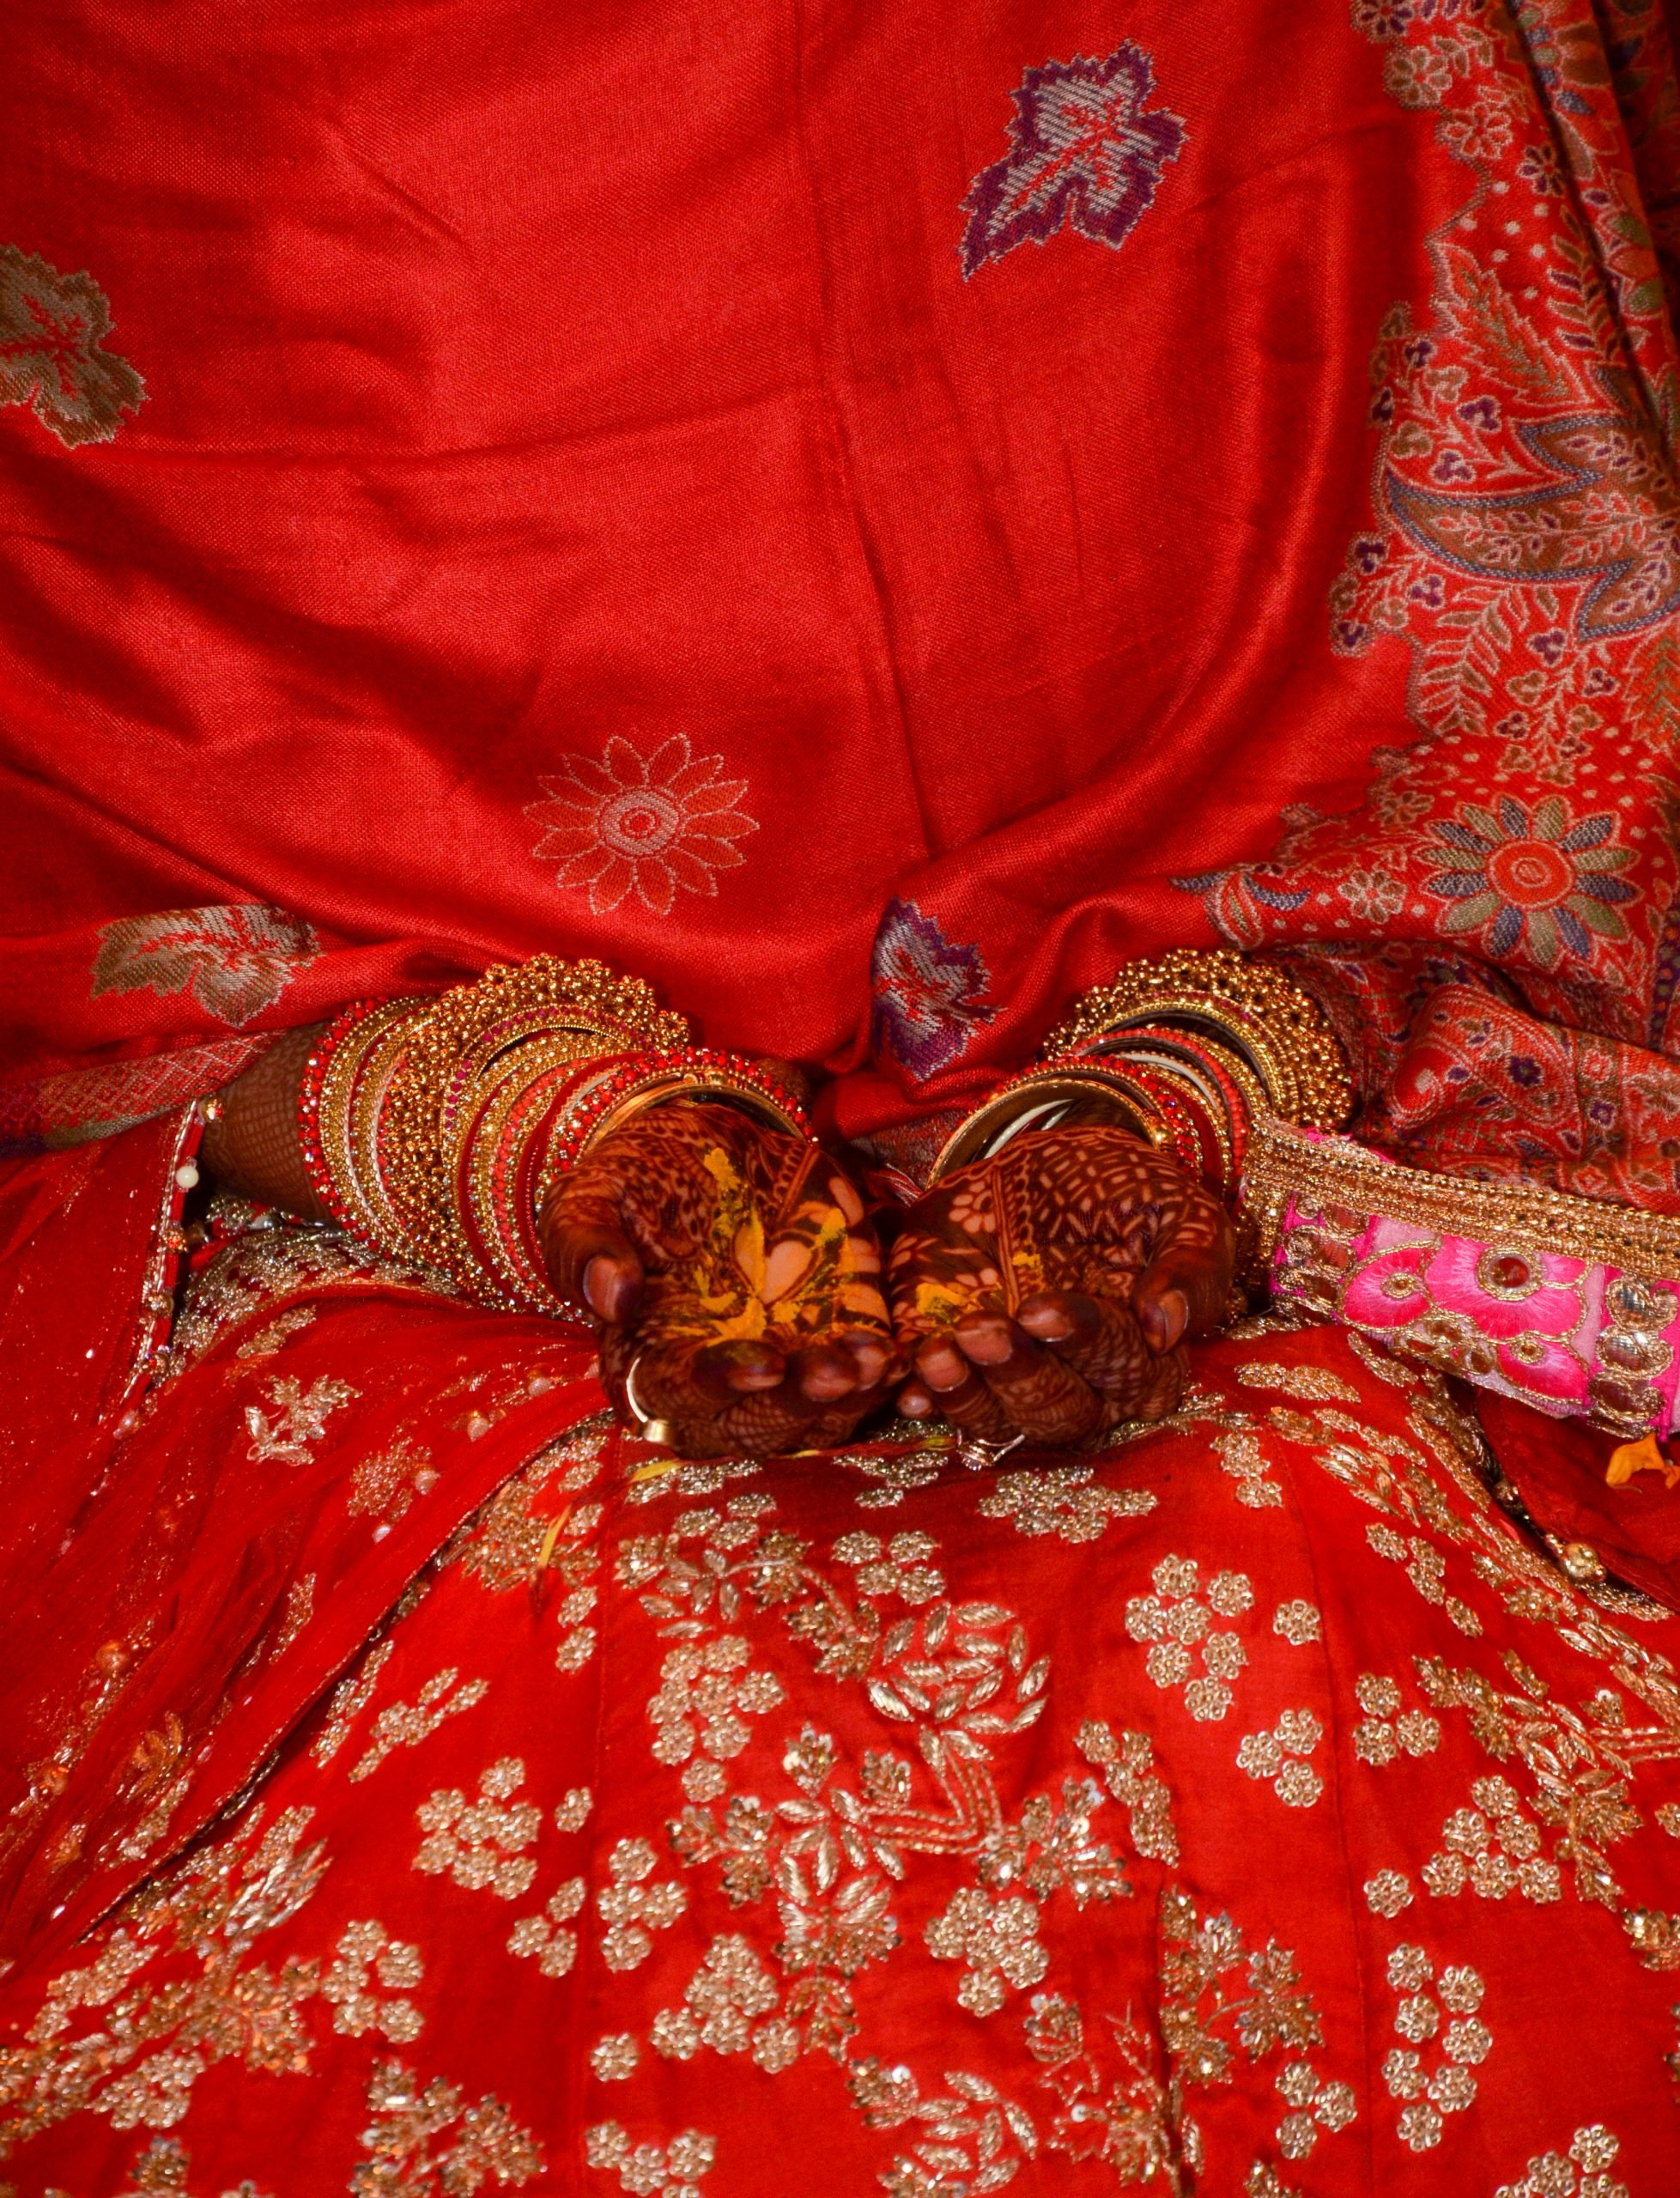 Hands of Indian bride